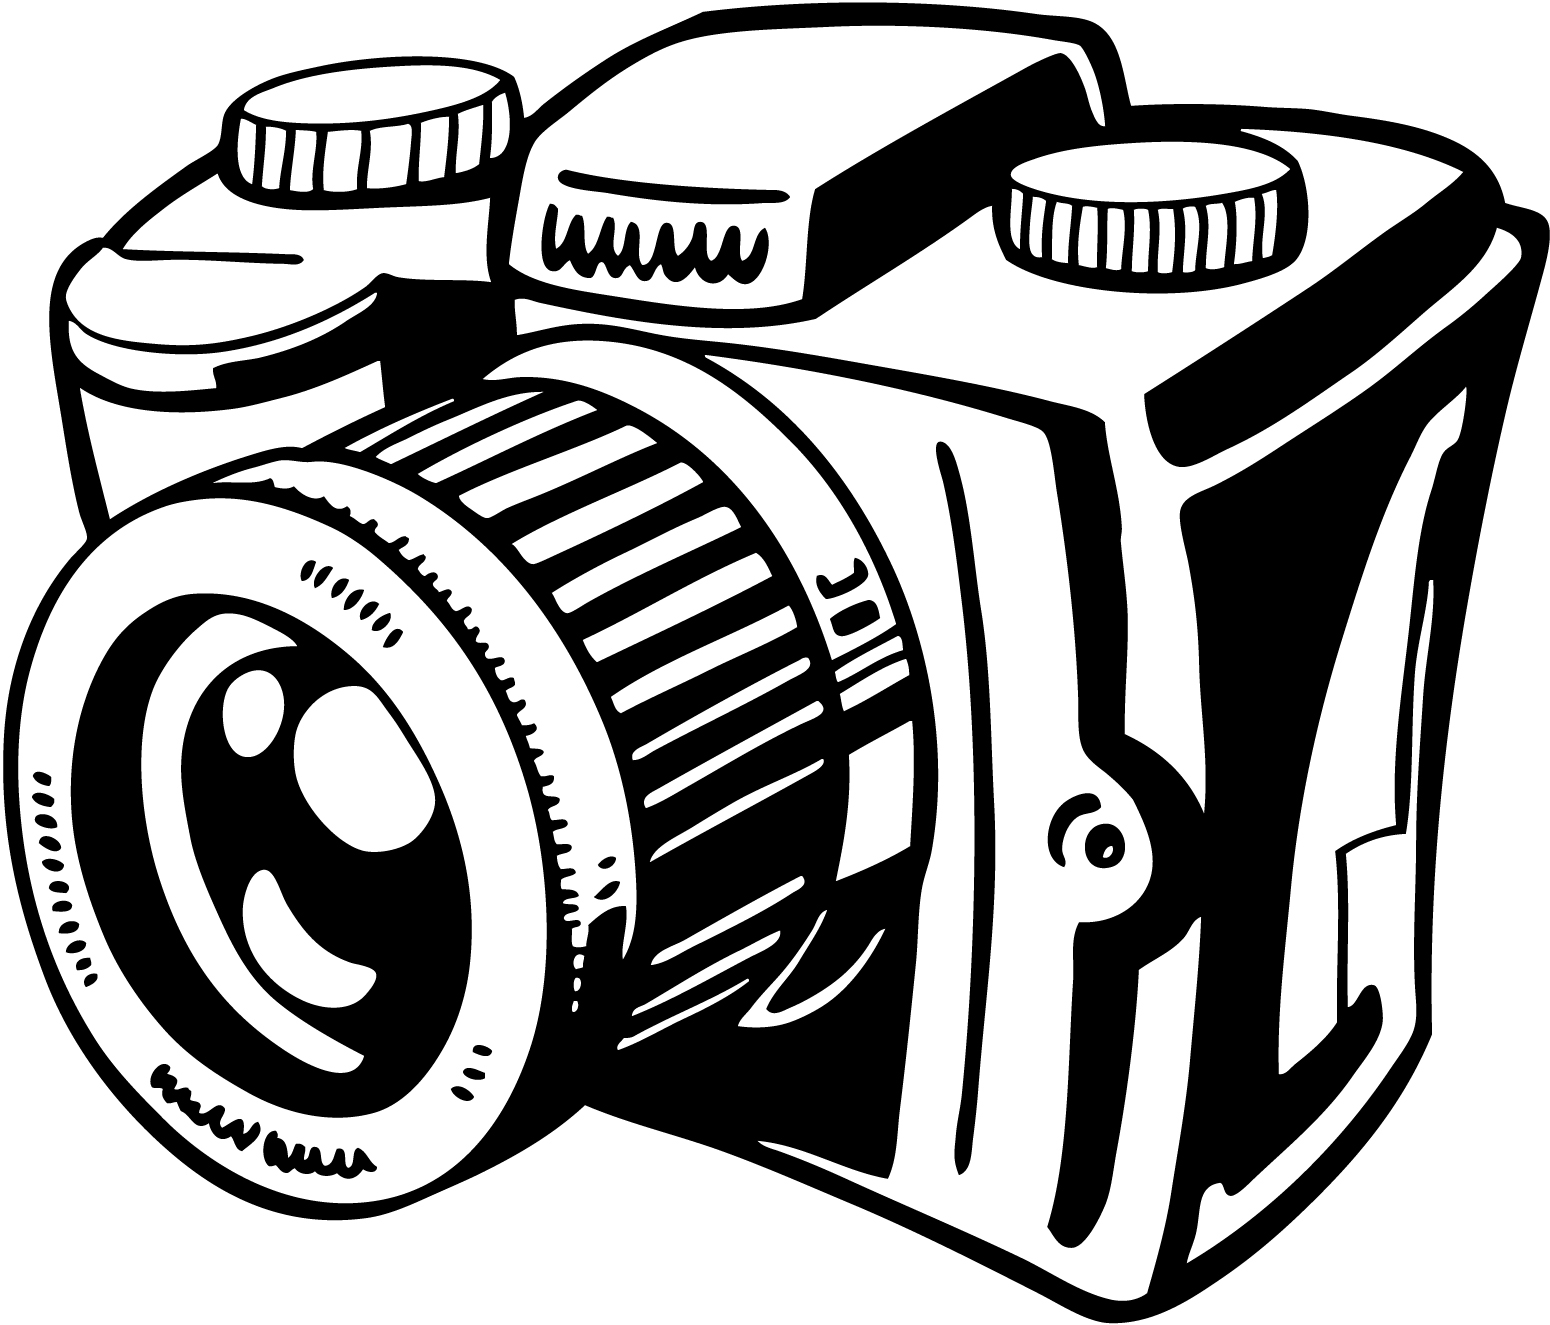 Camera black and white clipart svg black and white library 57+ Camera Clipart Black And White | ClipartLook svg black and white library